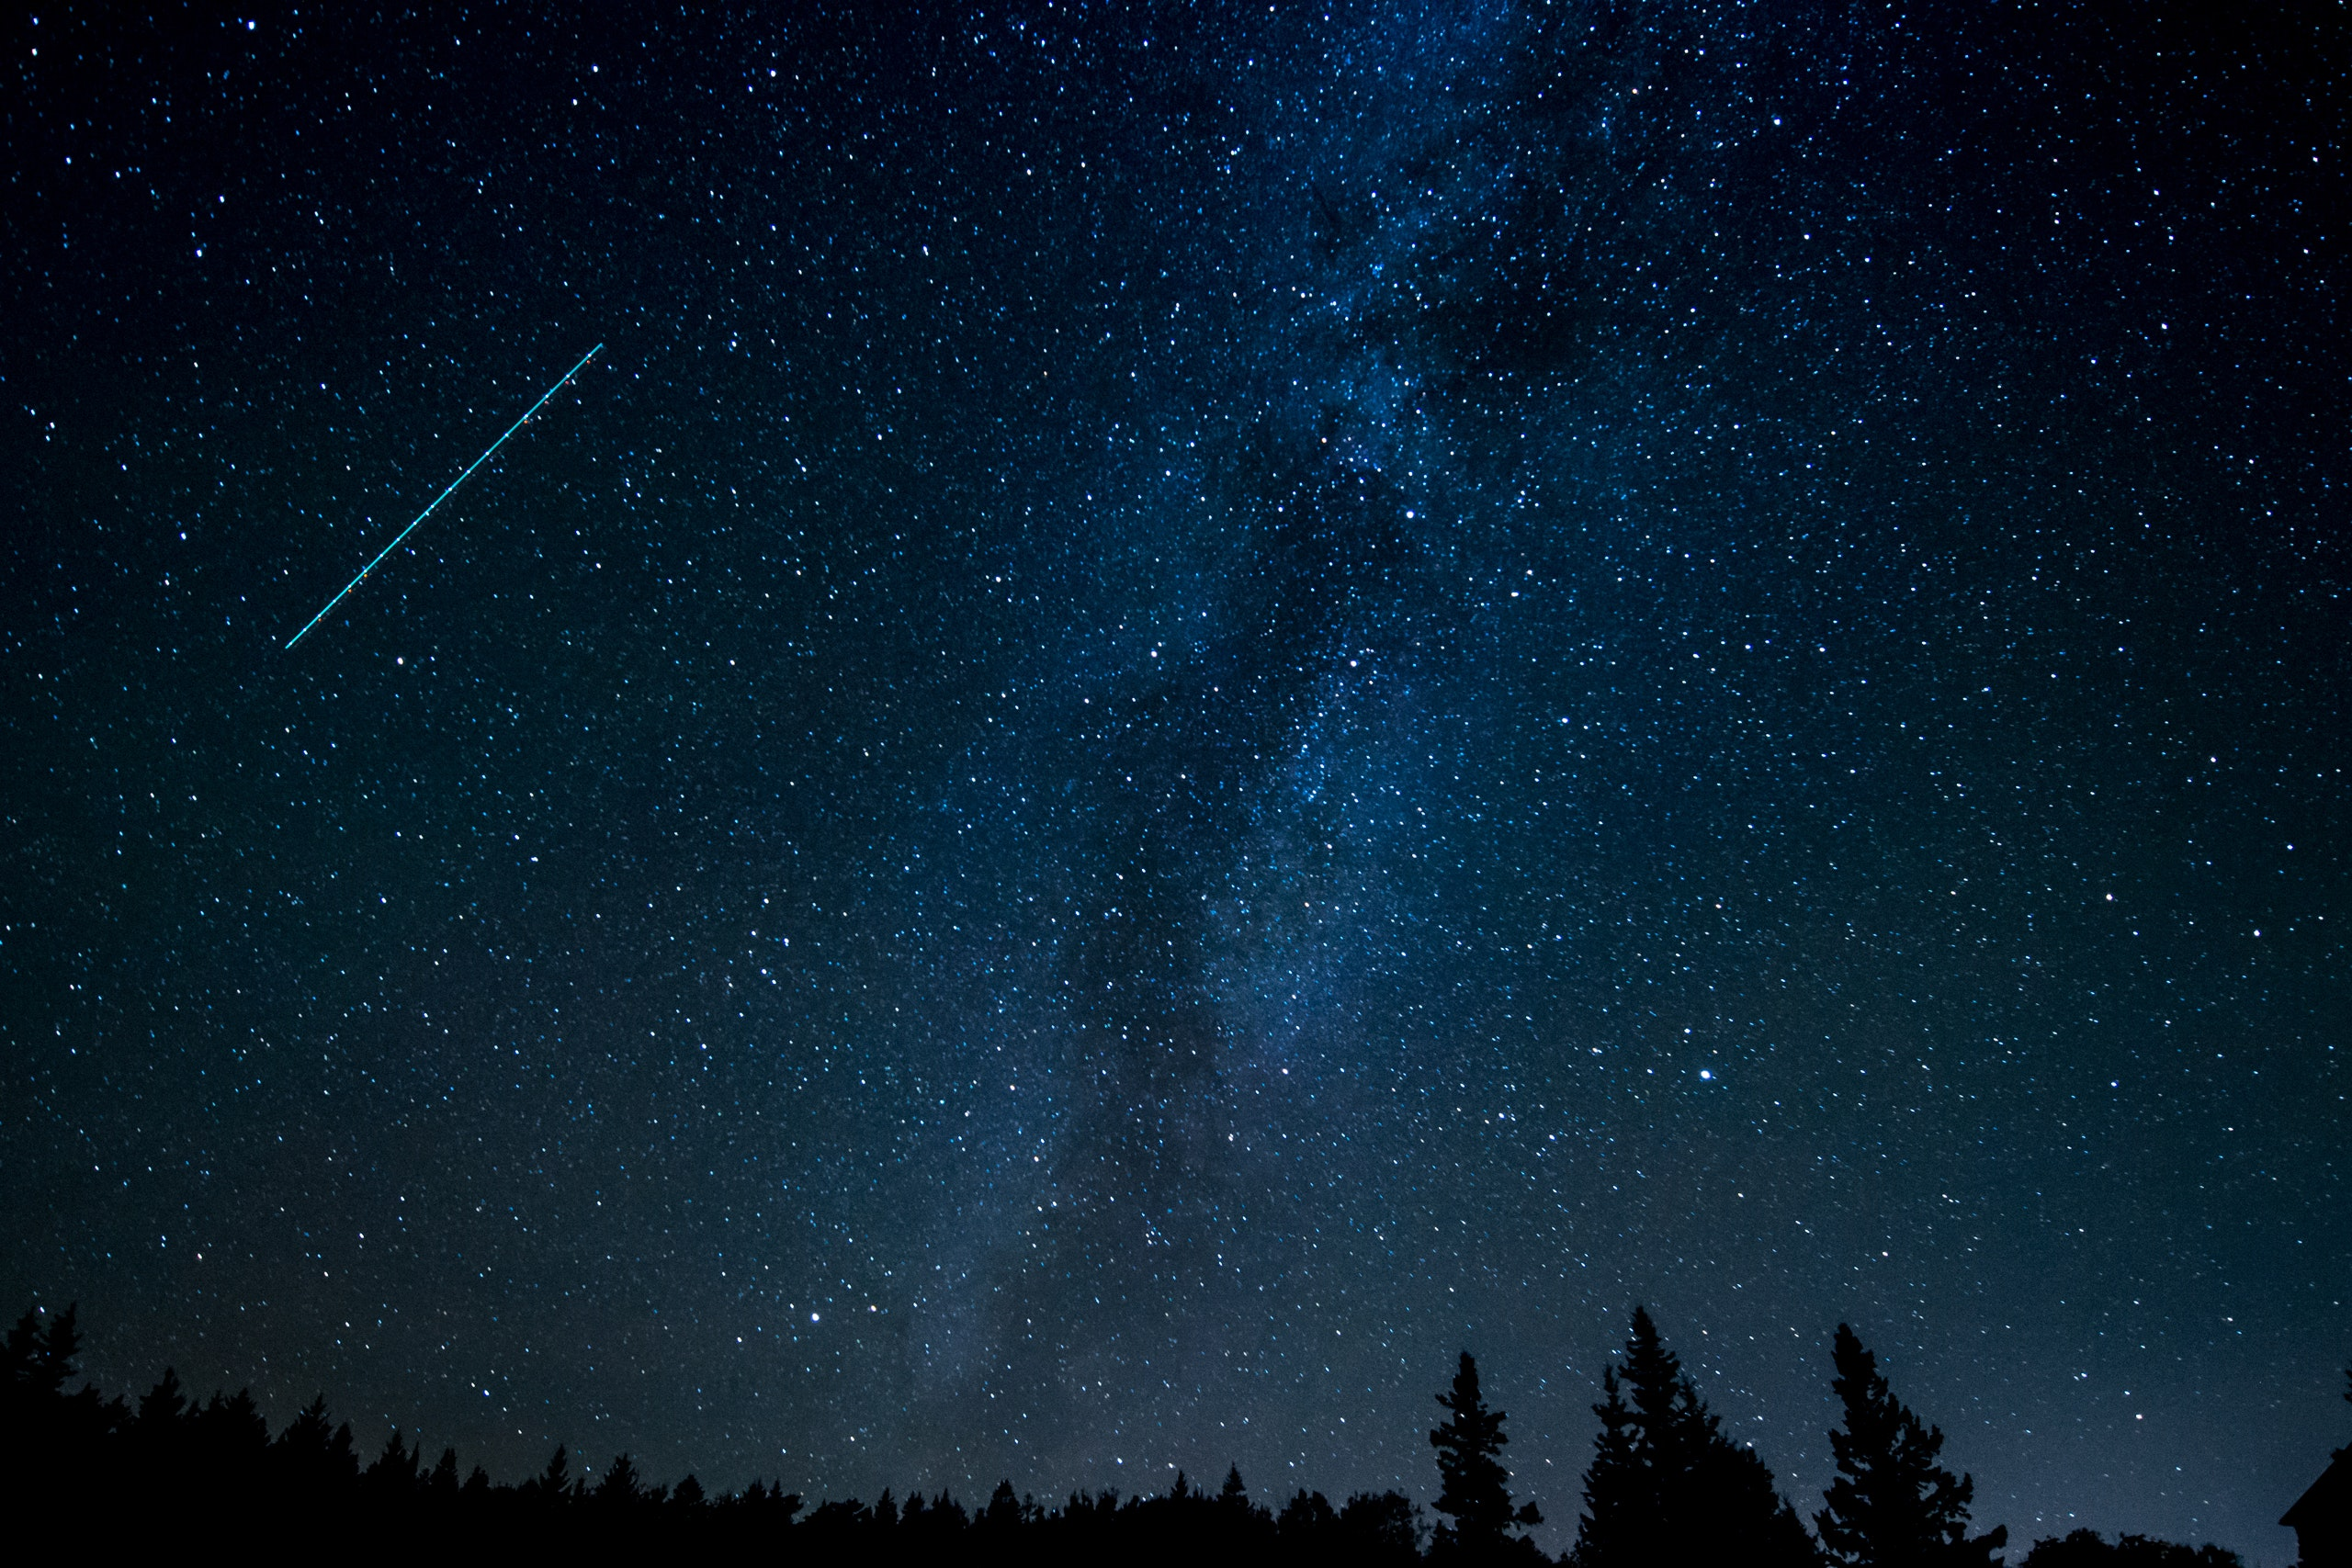 CoS Partnering to Offer Stargazing Programs at 12 Maine State Parks